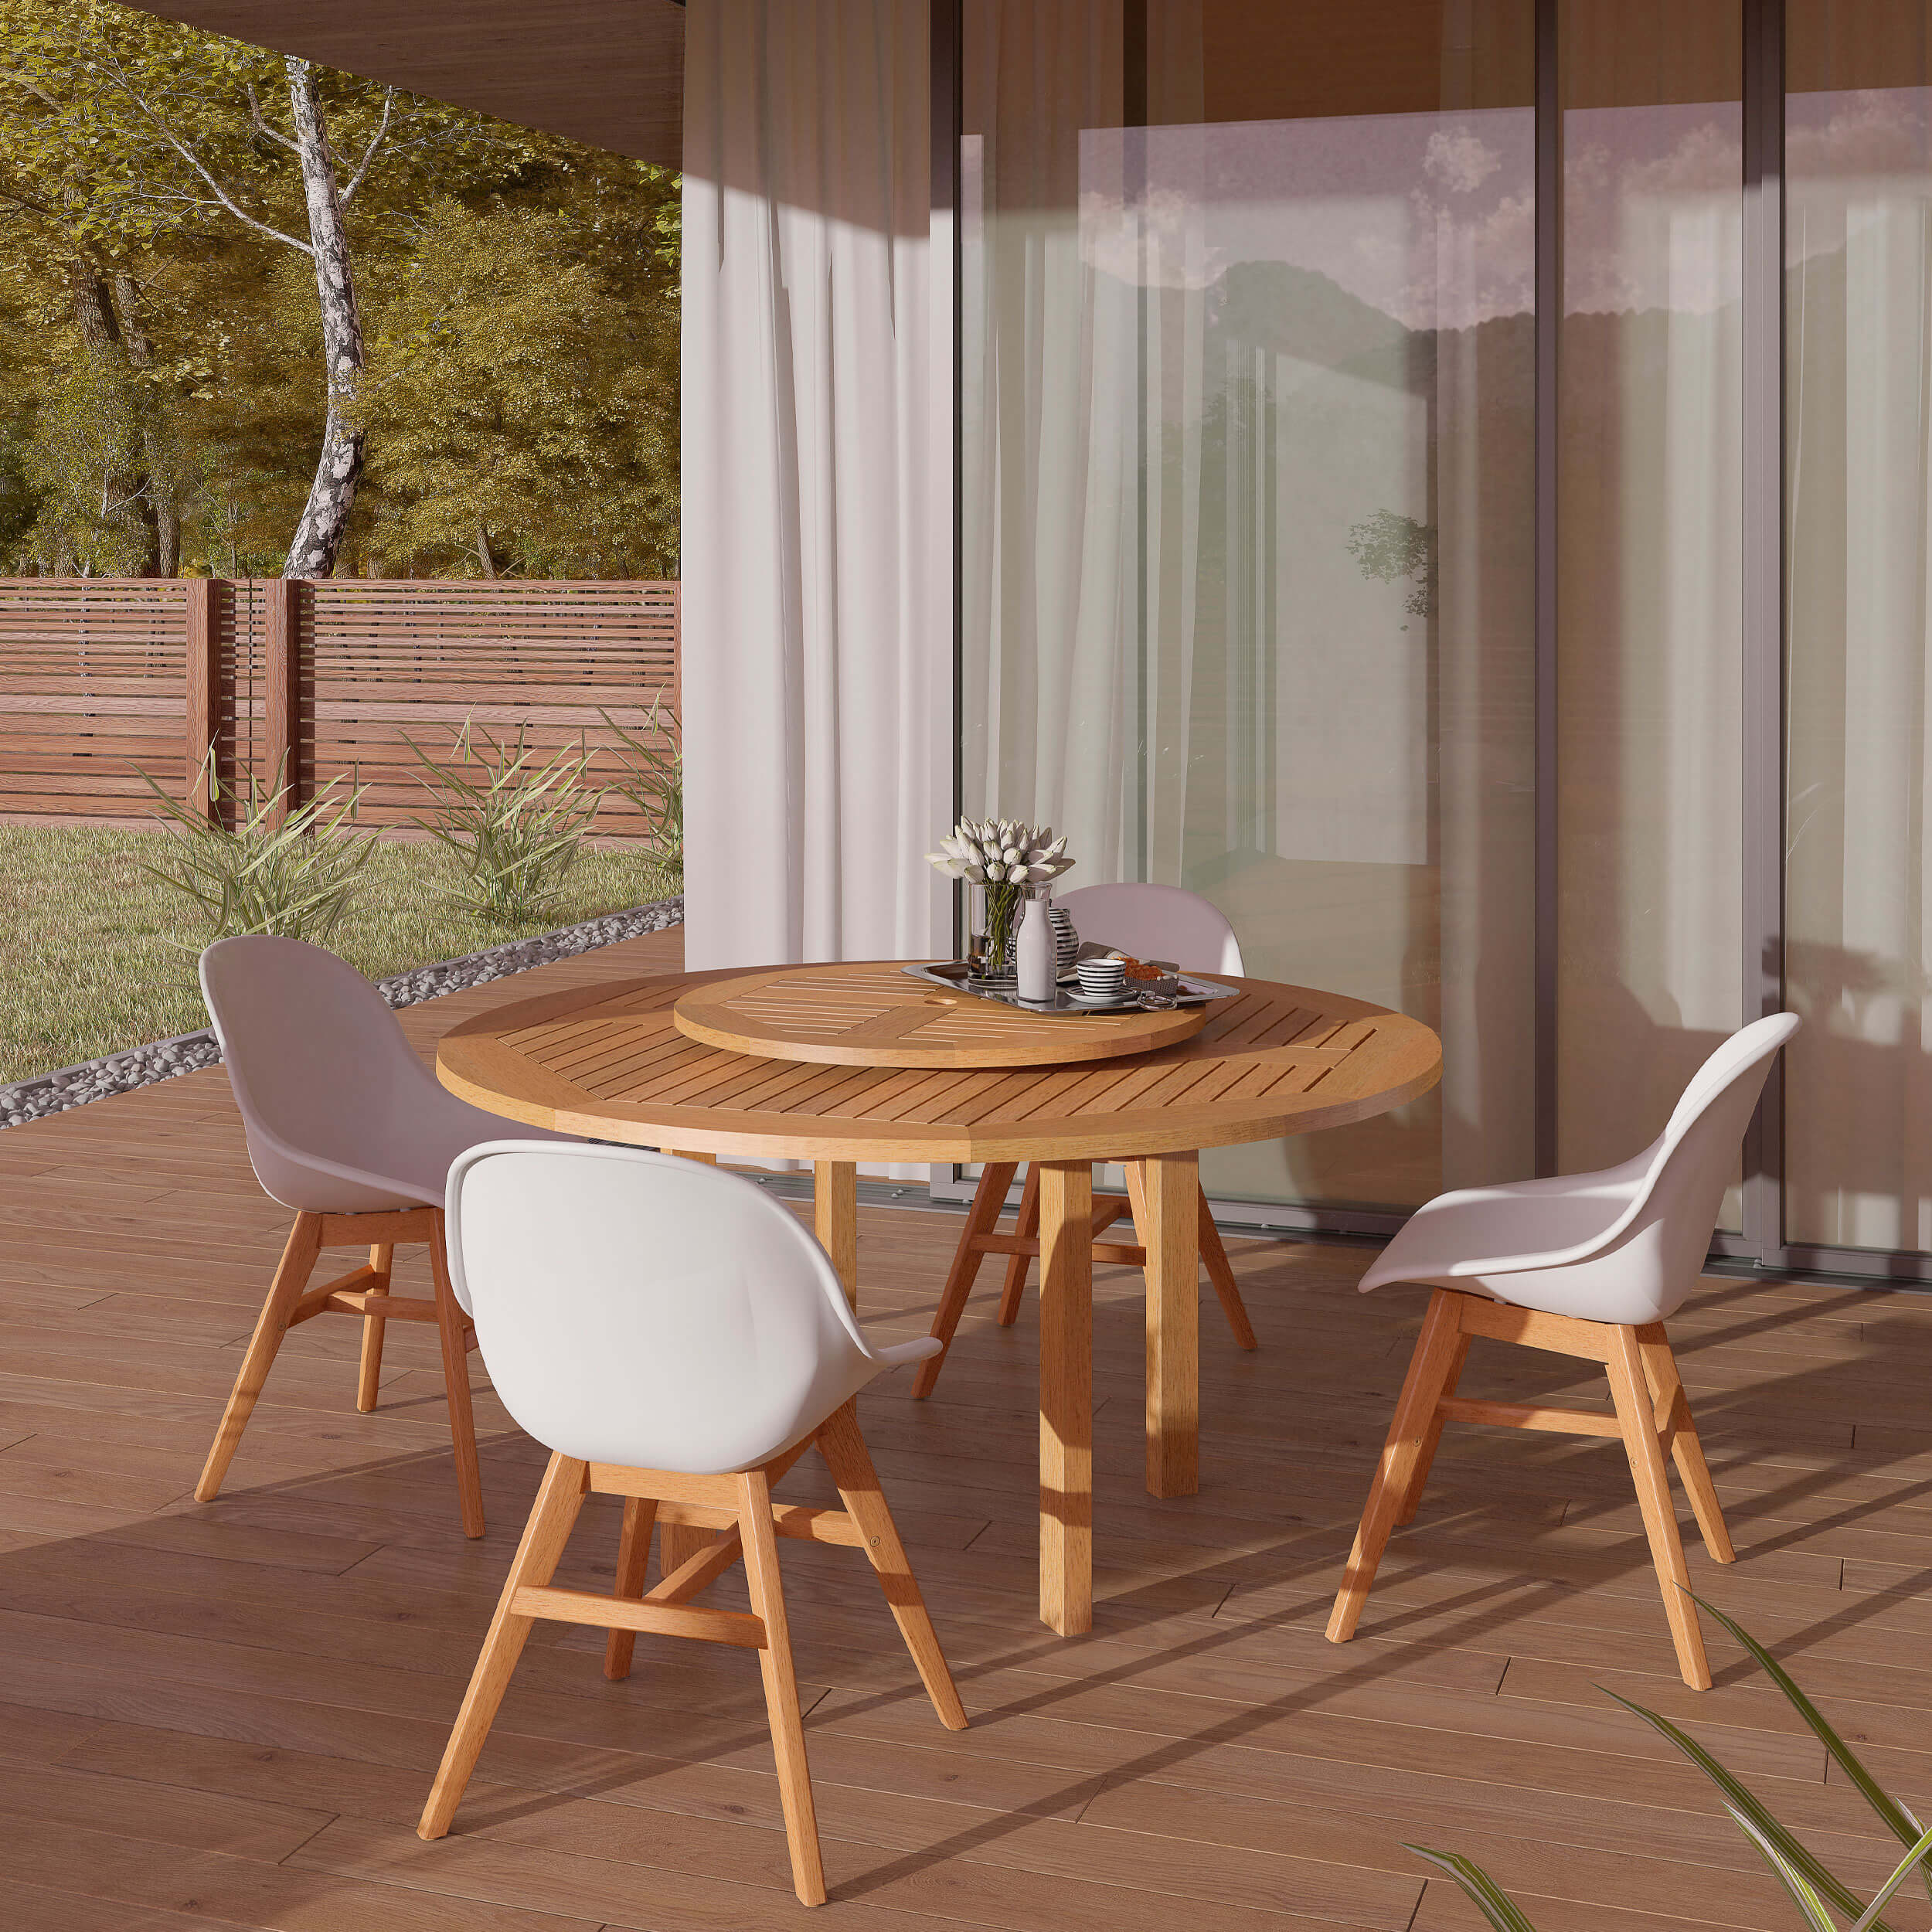 MODERN FRESH LOOK ROUND PATIO TABLE AND CHAIRS